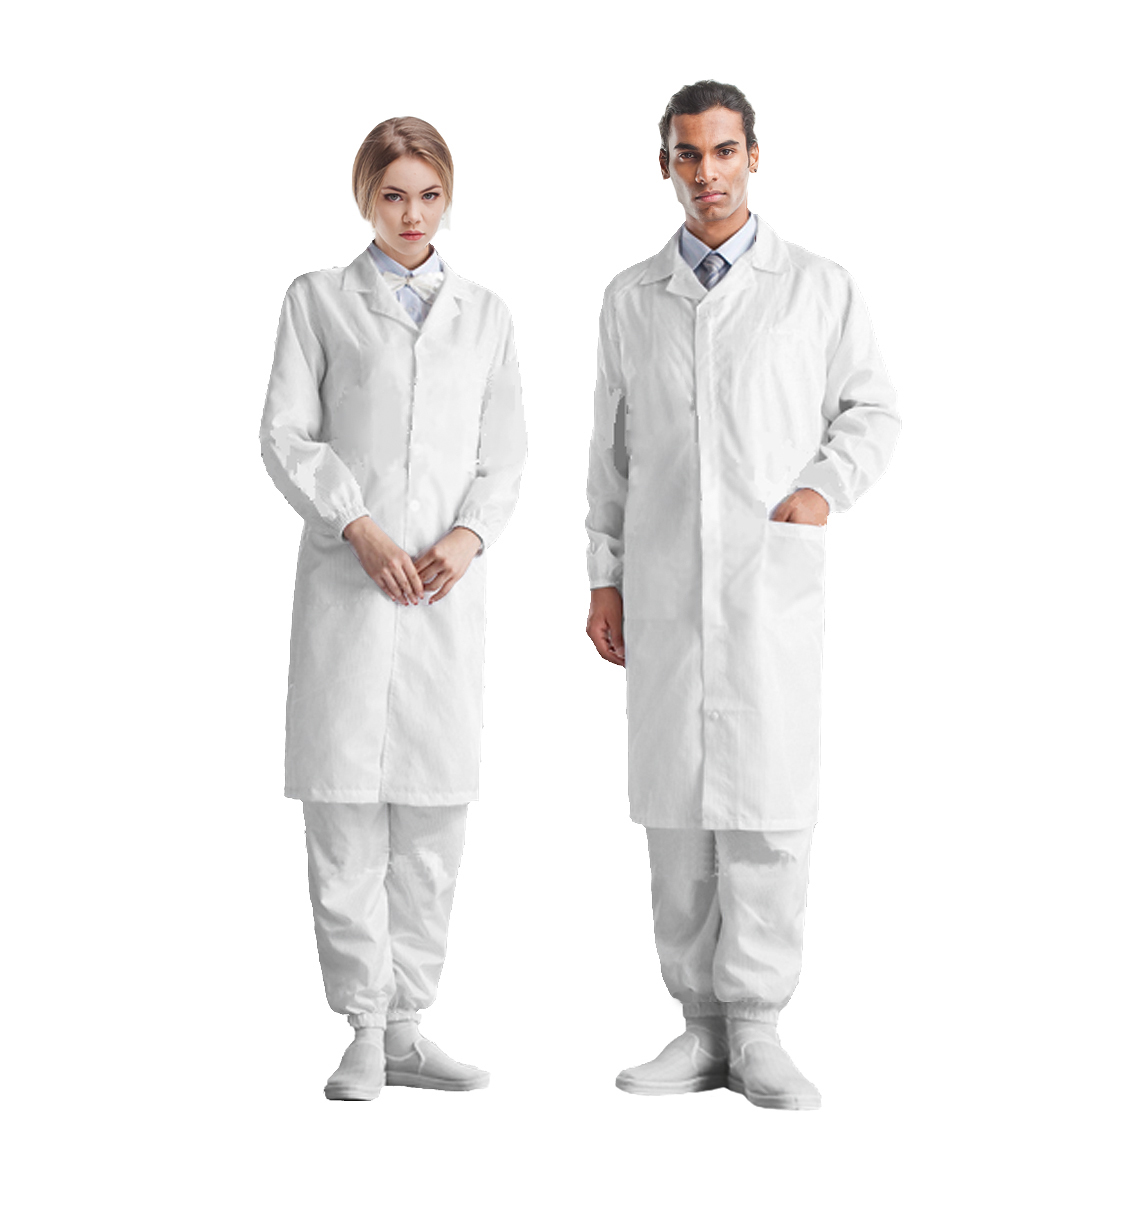 Viking Cleanroom Garments and Accessories